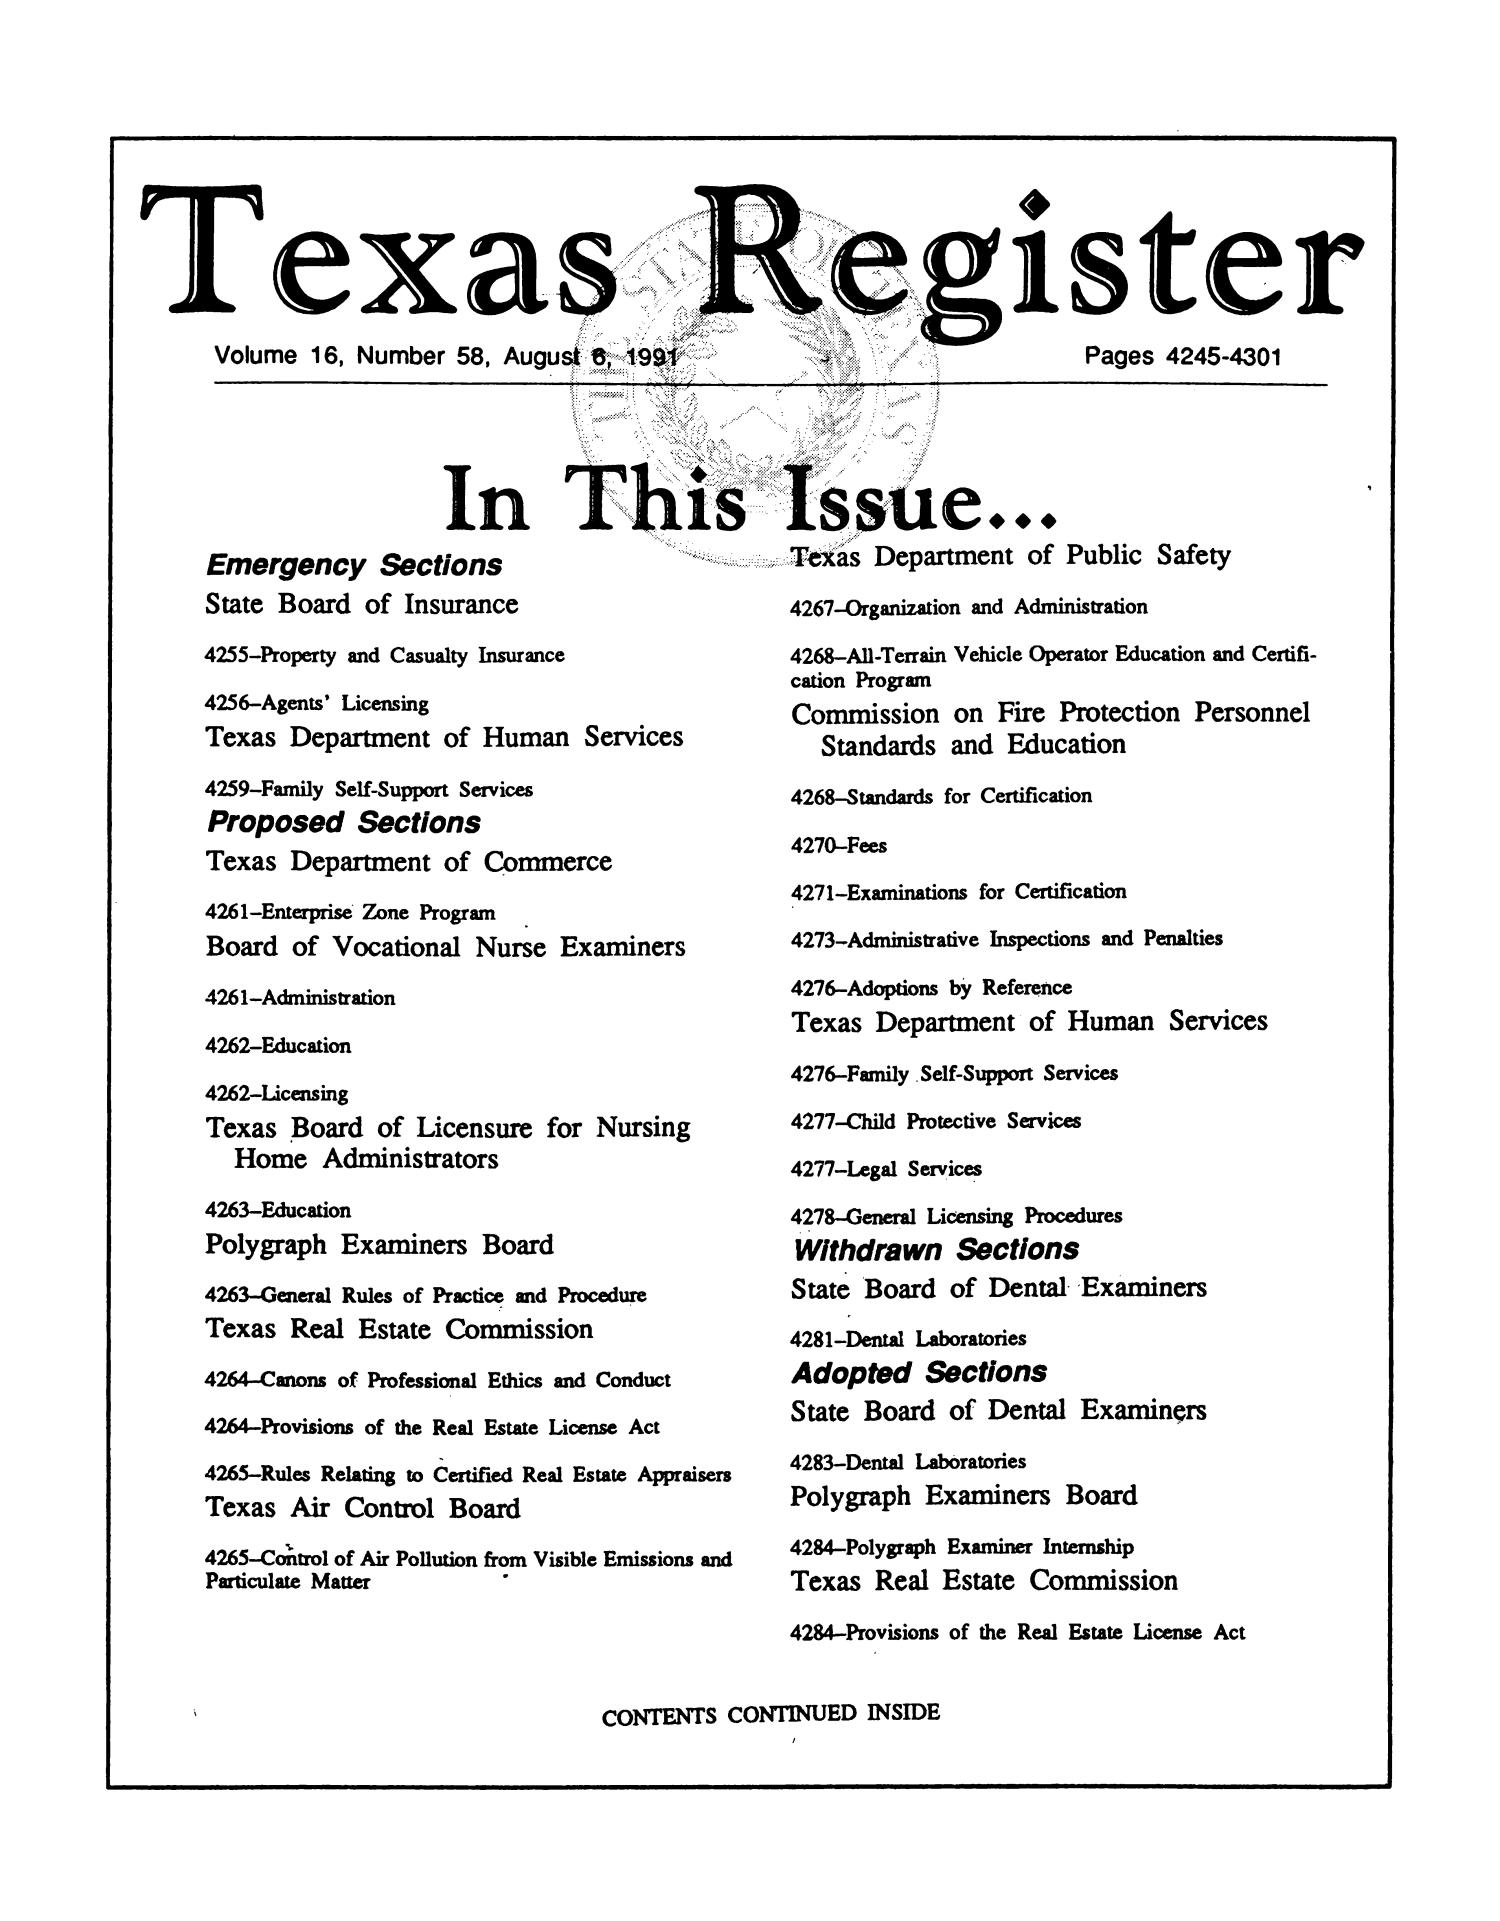 Texas Register, Volume 16, Number 58, Pages 4245-4301